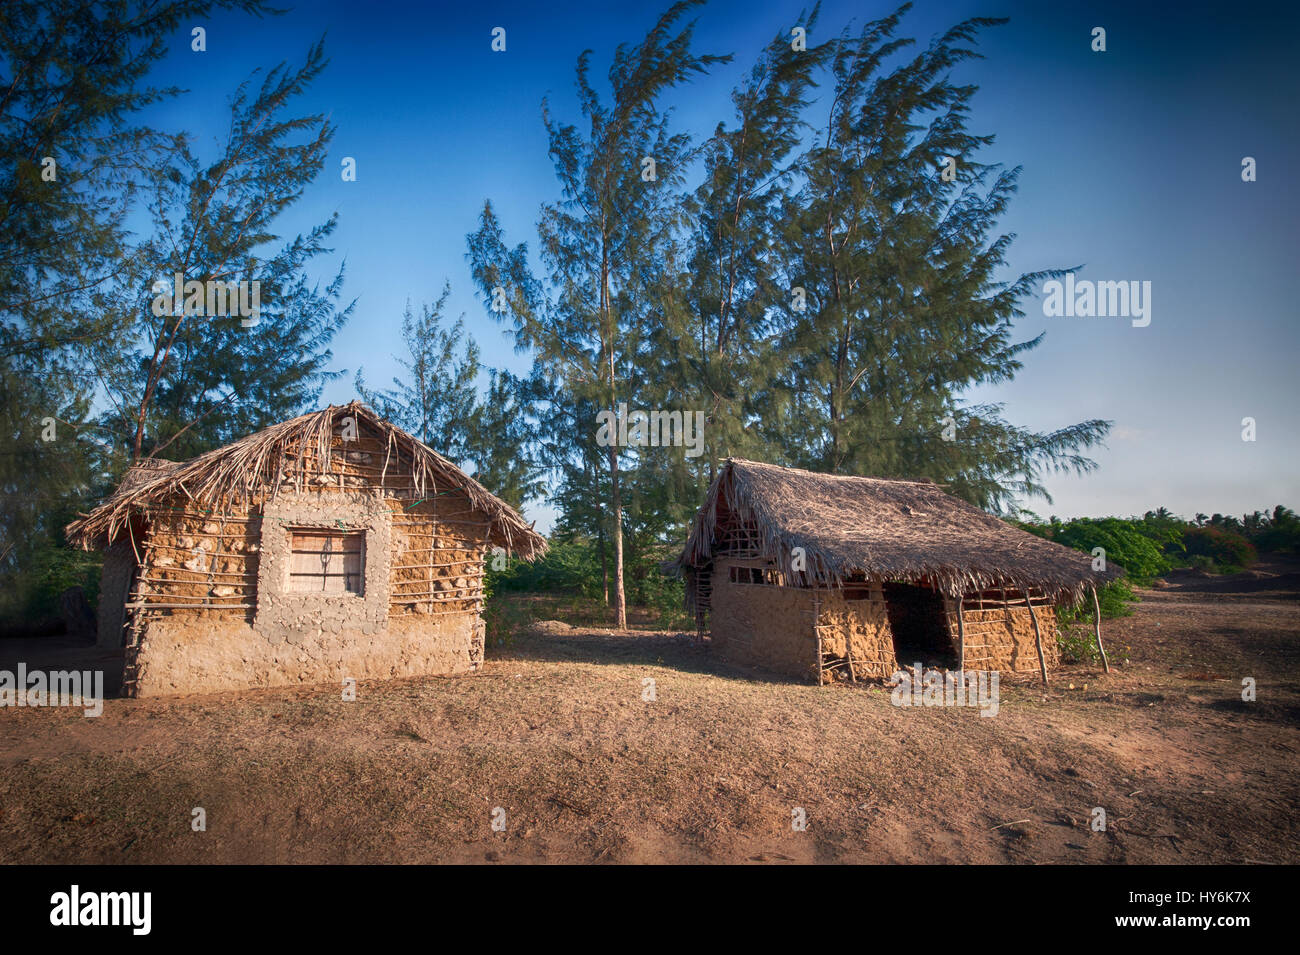 Isolated huts at sunset in Kenya - Stock Image